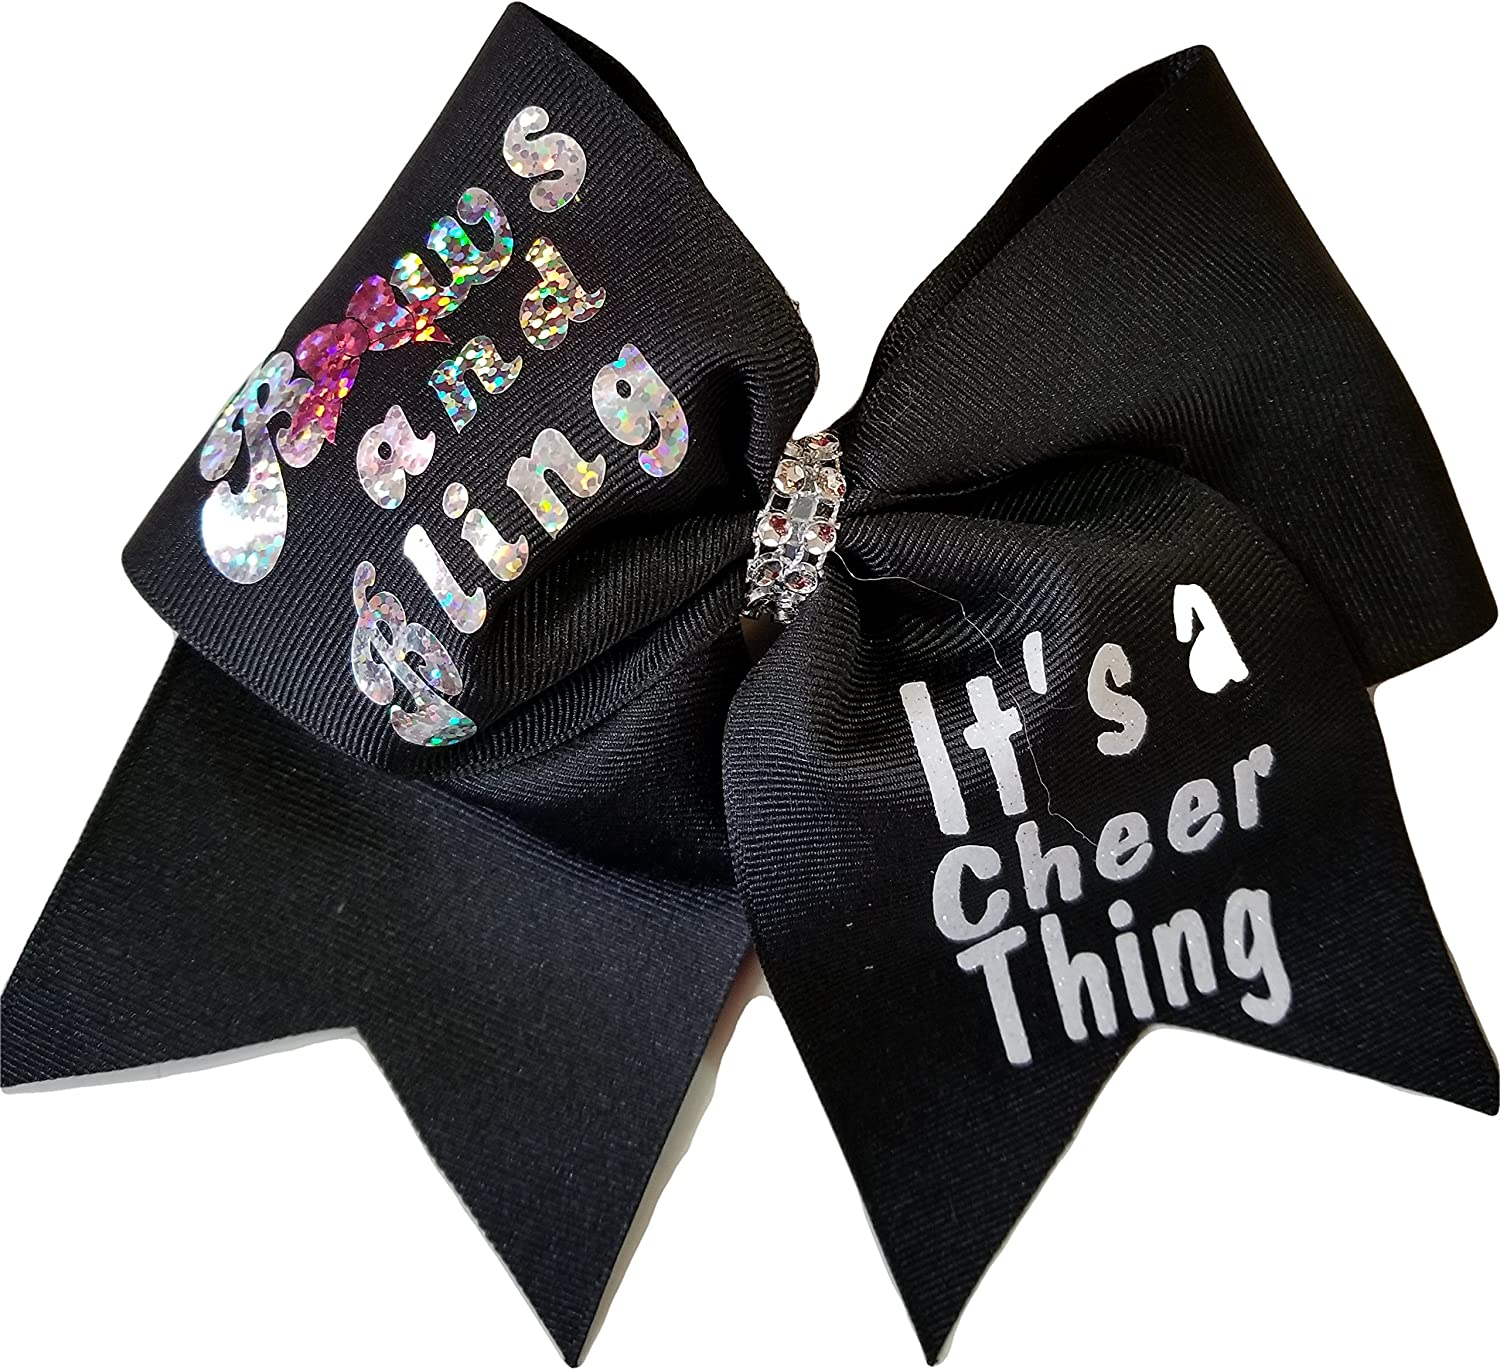 Cheer Bows Black Silver Holographic Bows and Bling, It's a Cheer Thing Hair Bow